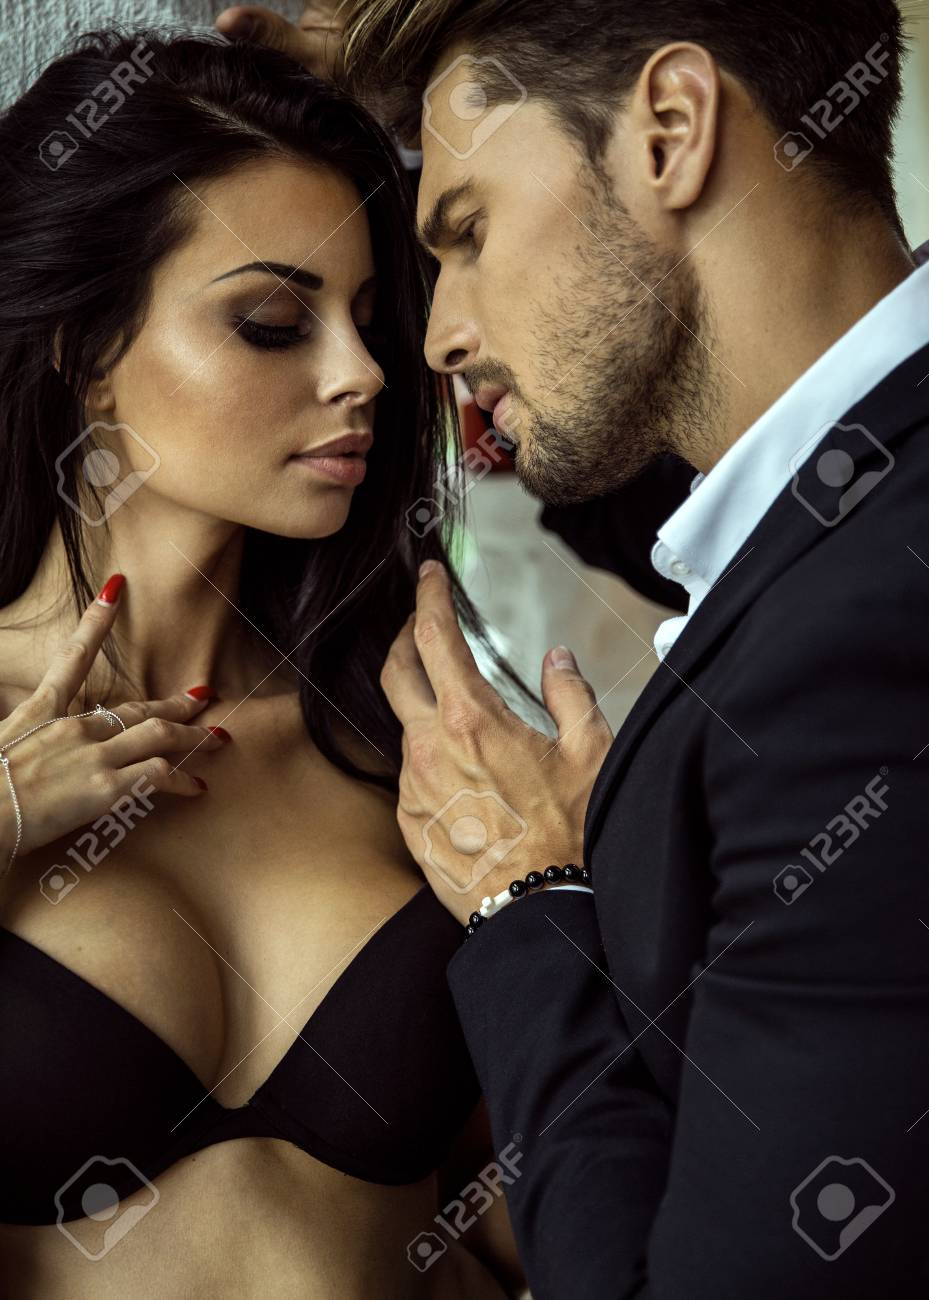 Portrait of sexy man in black suit touching sexy woman in lingerie Stock  Photo - 62176343